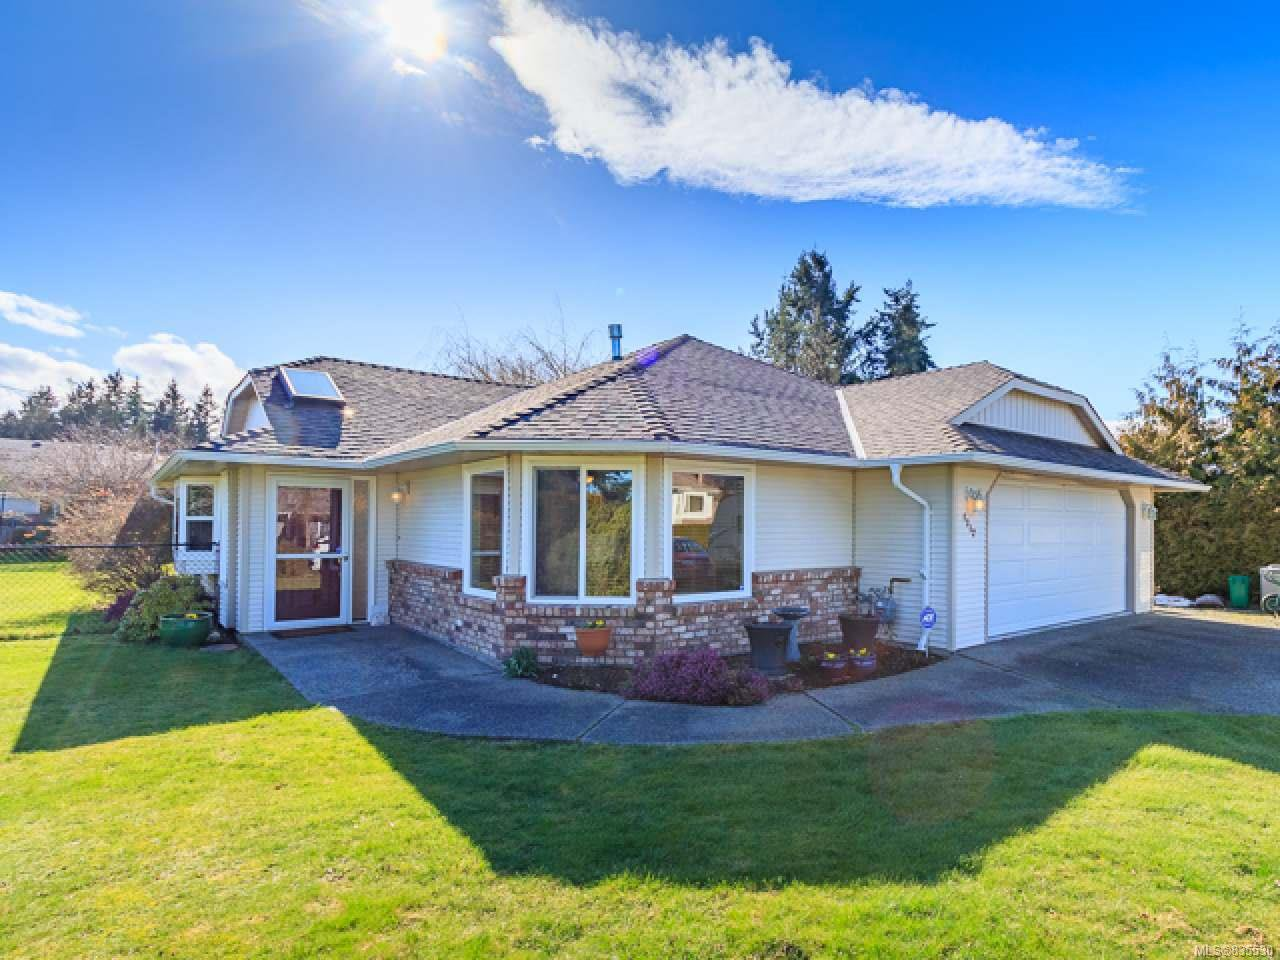 Main Photo: 1312 Boultbee Dr in FRENCH CREEK: PQ French Creek House for sale (Parksville/Qualicum)  : MLS®# 835530